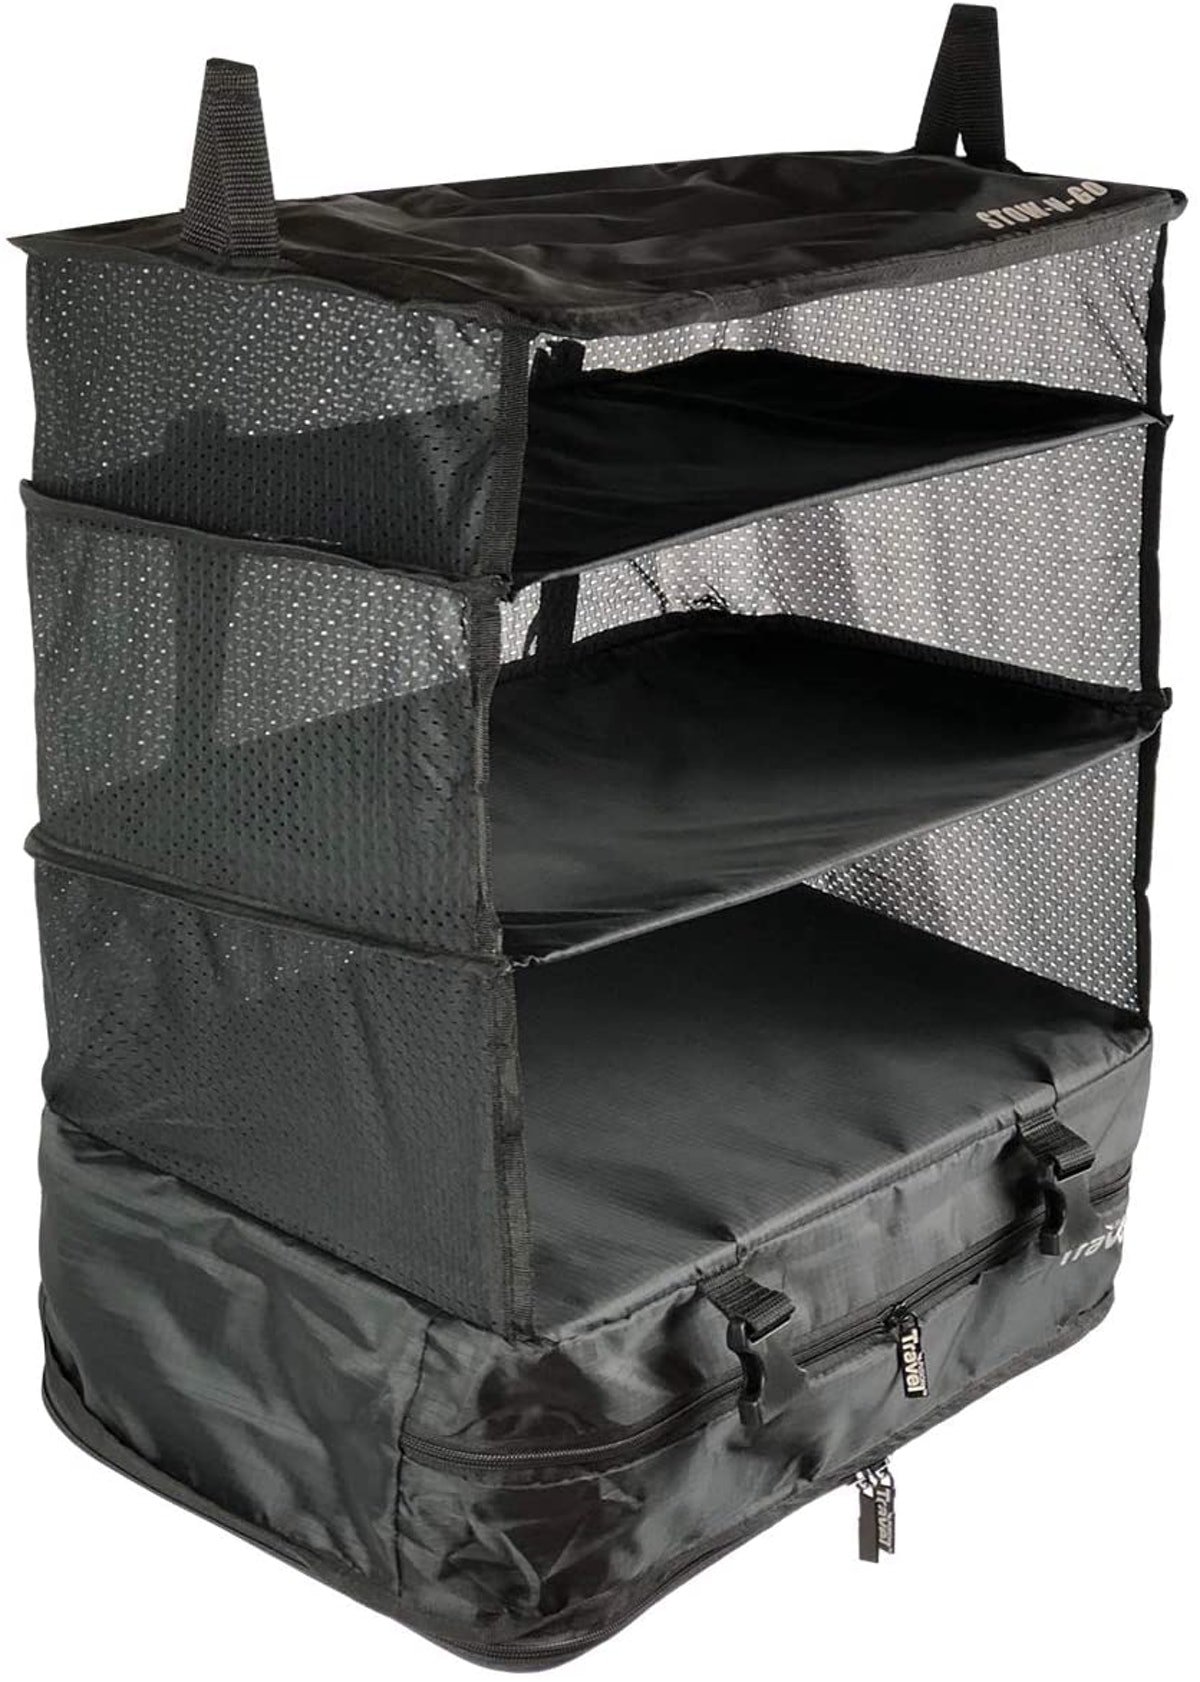 Grand Fusion Housewares Luggage System